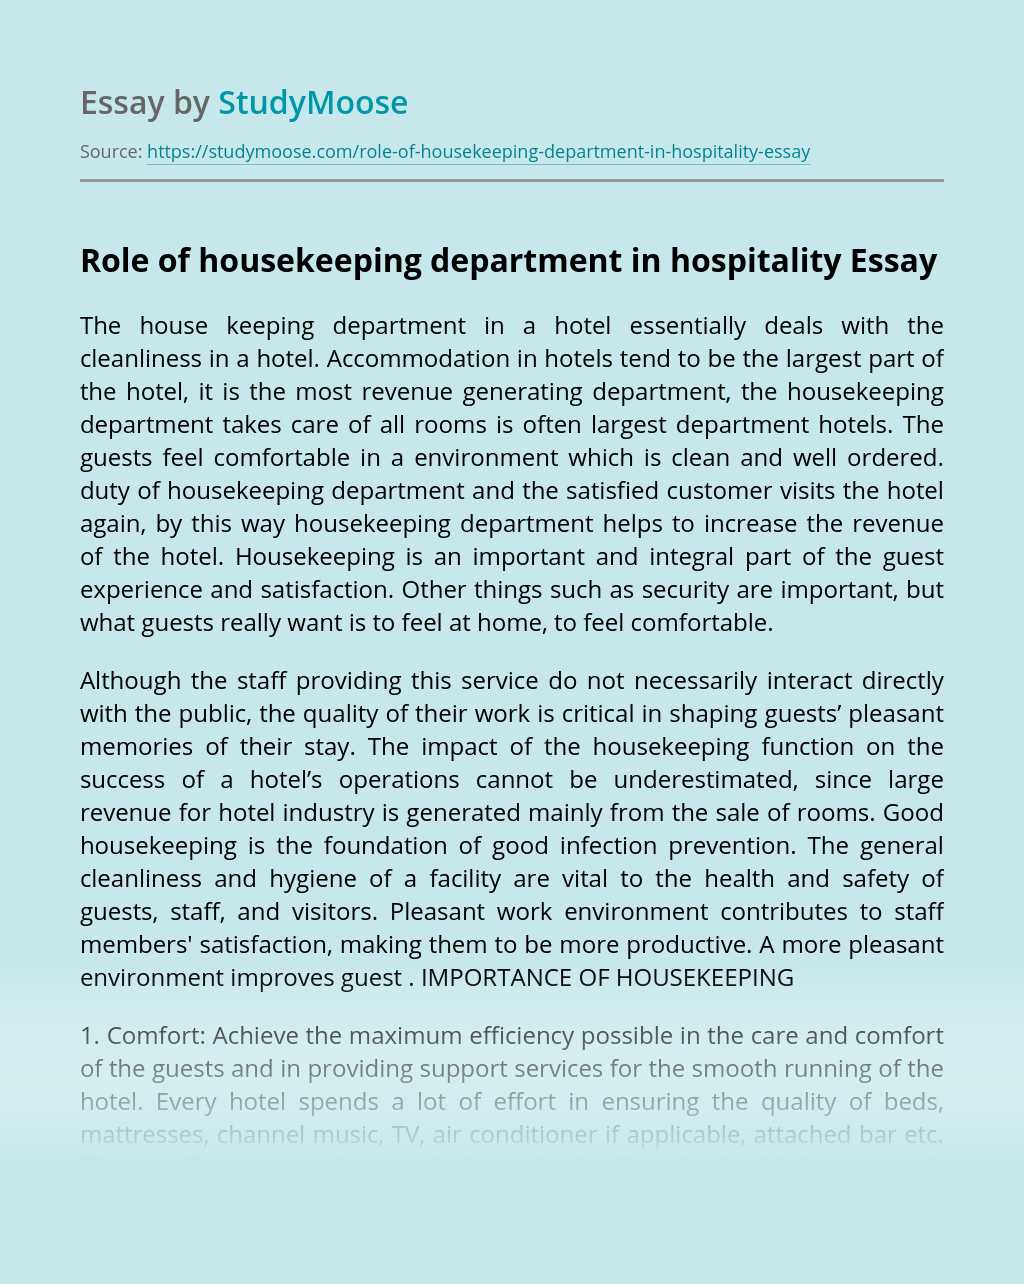 Role of housekeeping department in hospitality